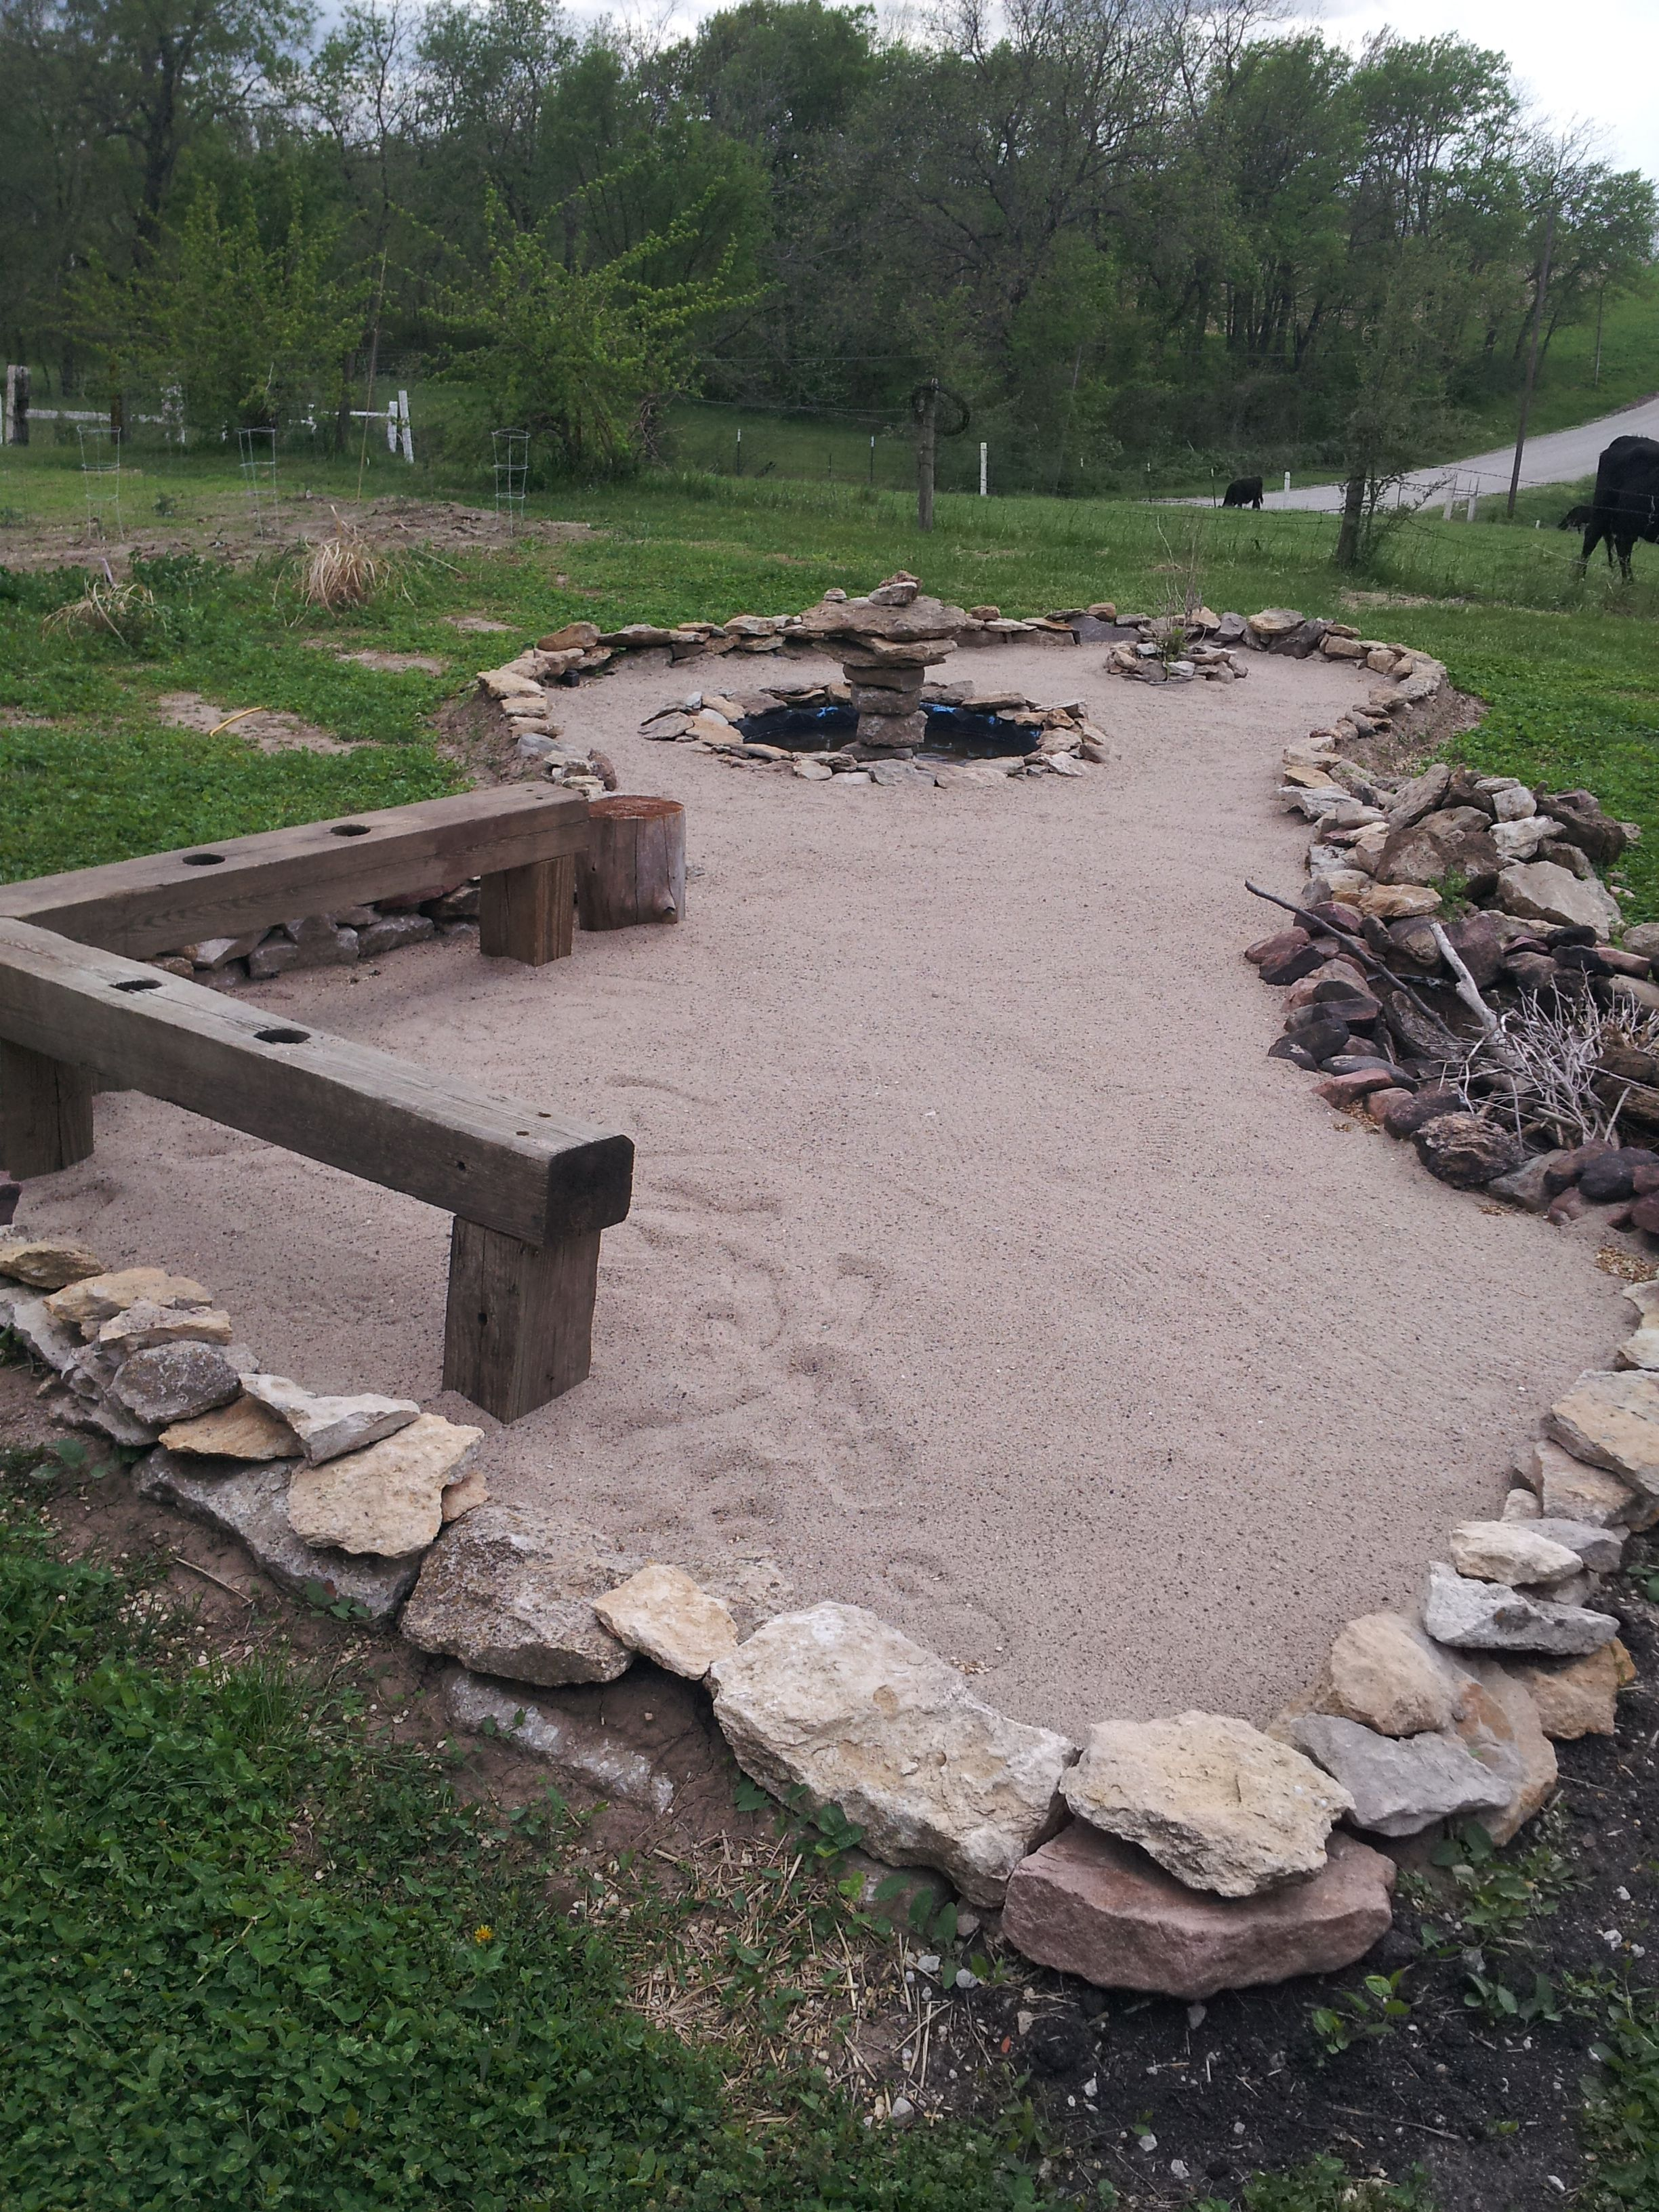 Sand Firepit, Rock Fountain, Cost for us $100 to build this. Rock -Free, We had the timbers, used a plastic swimming pool that we had & Fish pump that we had but i had paid $1 for it (Garage Sale), used tarps for liner & PAID for Sand from local Quarry. Right Side Corner Fire pit, in the center takes up a lot of space. This is still a work in progress, adding a Rock Grill & Pergola.